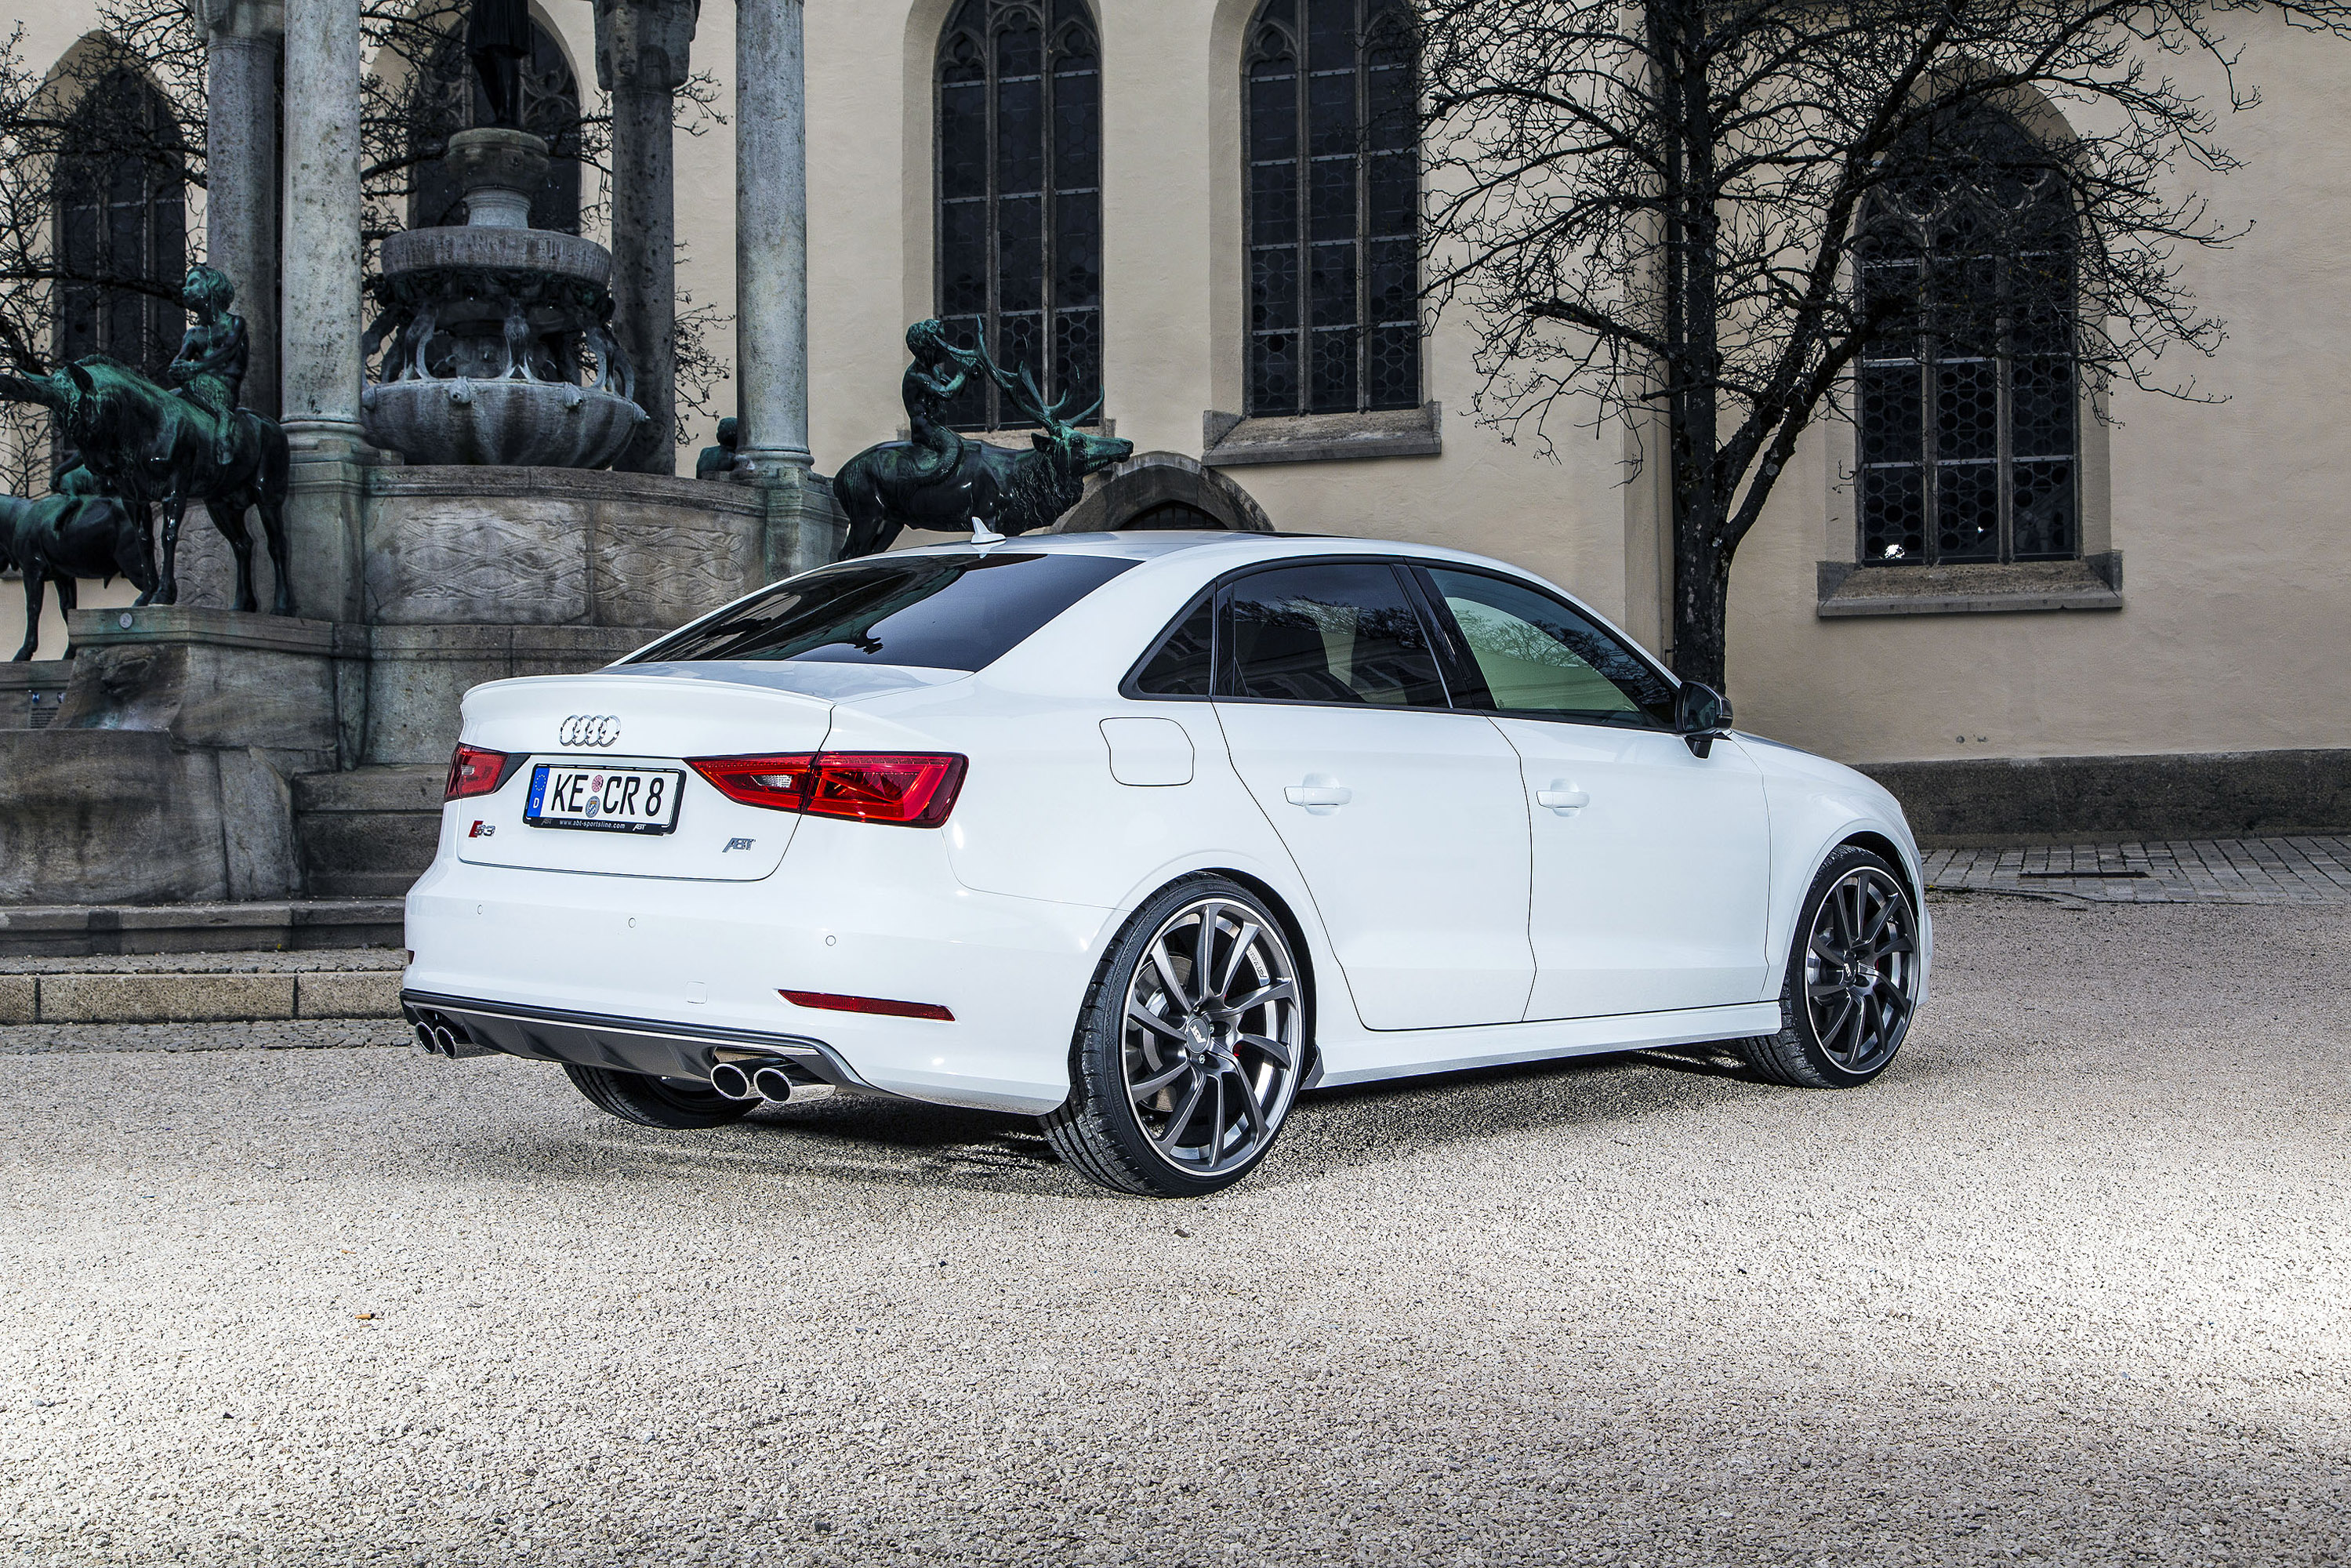 abt audi s3 saloon 370hp and 460nm. Black Bedroom Furniture Sets. Home Design Ideas